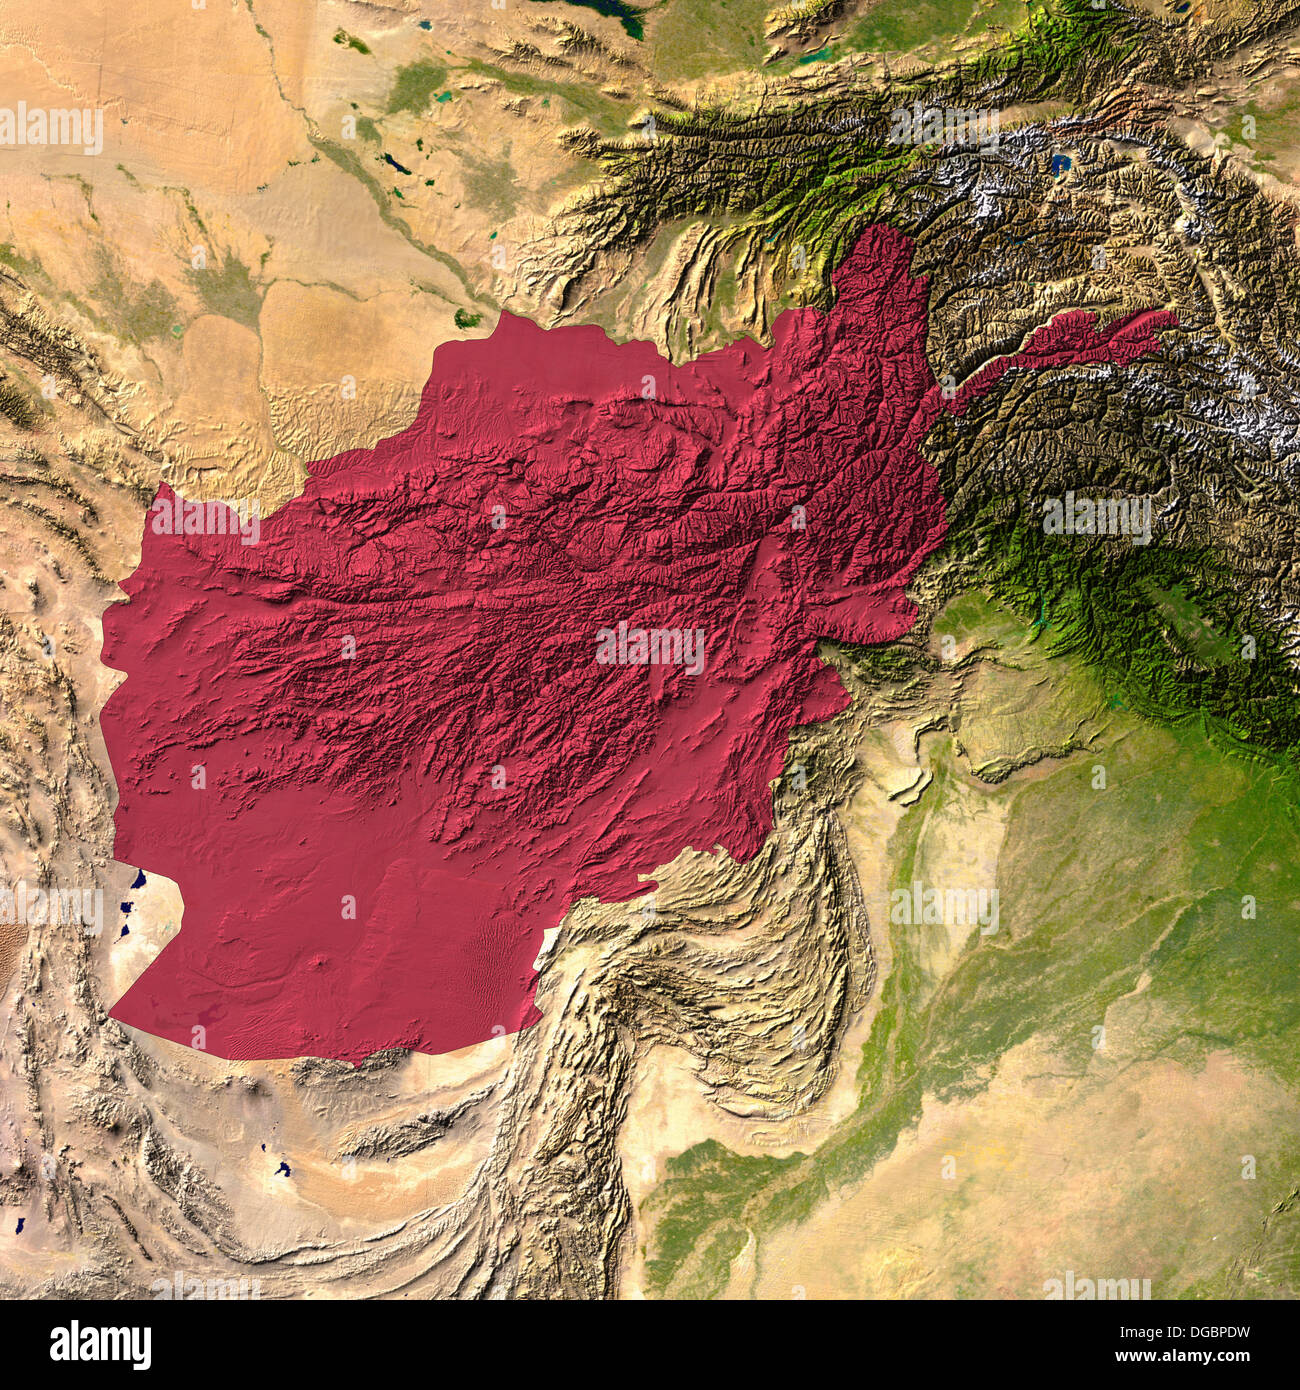 Physical Map Of Afghanistan Terrain on physical map that shows the rivers of afghanistan, physical map of afghanistan with key, physical map of asia, physical map with rivers of afghanistan,